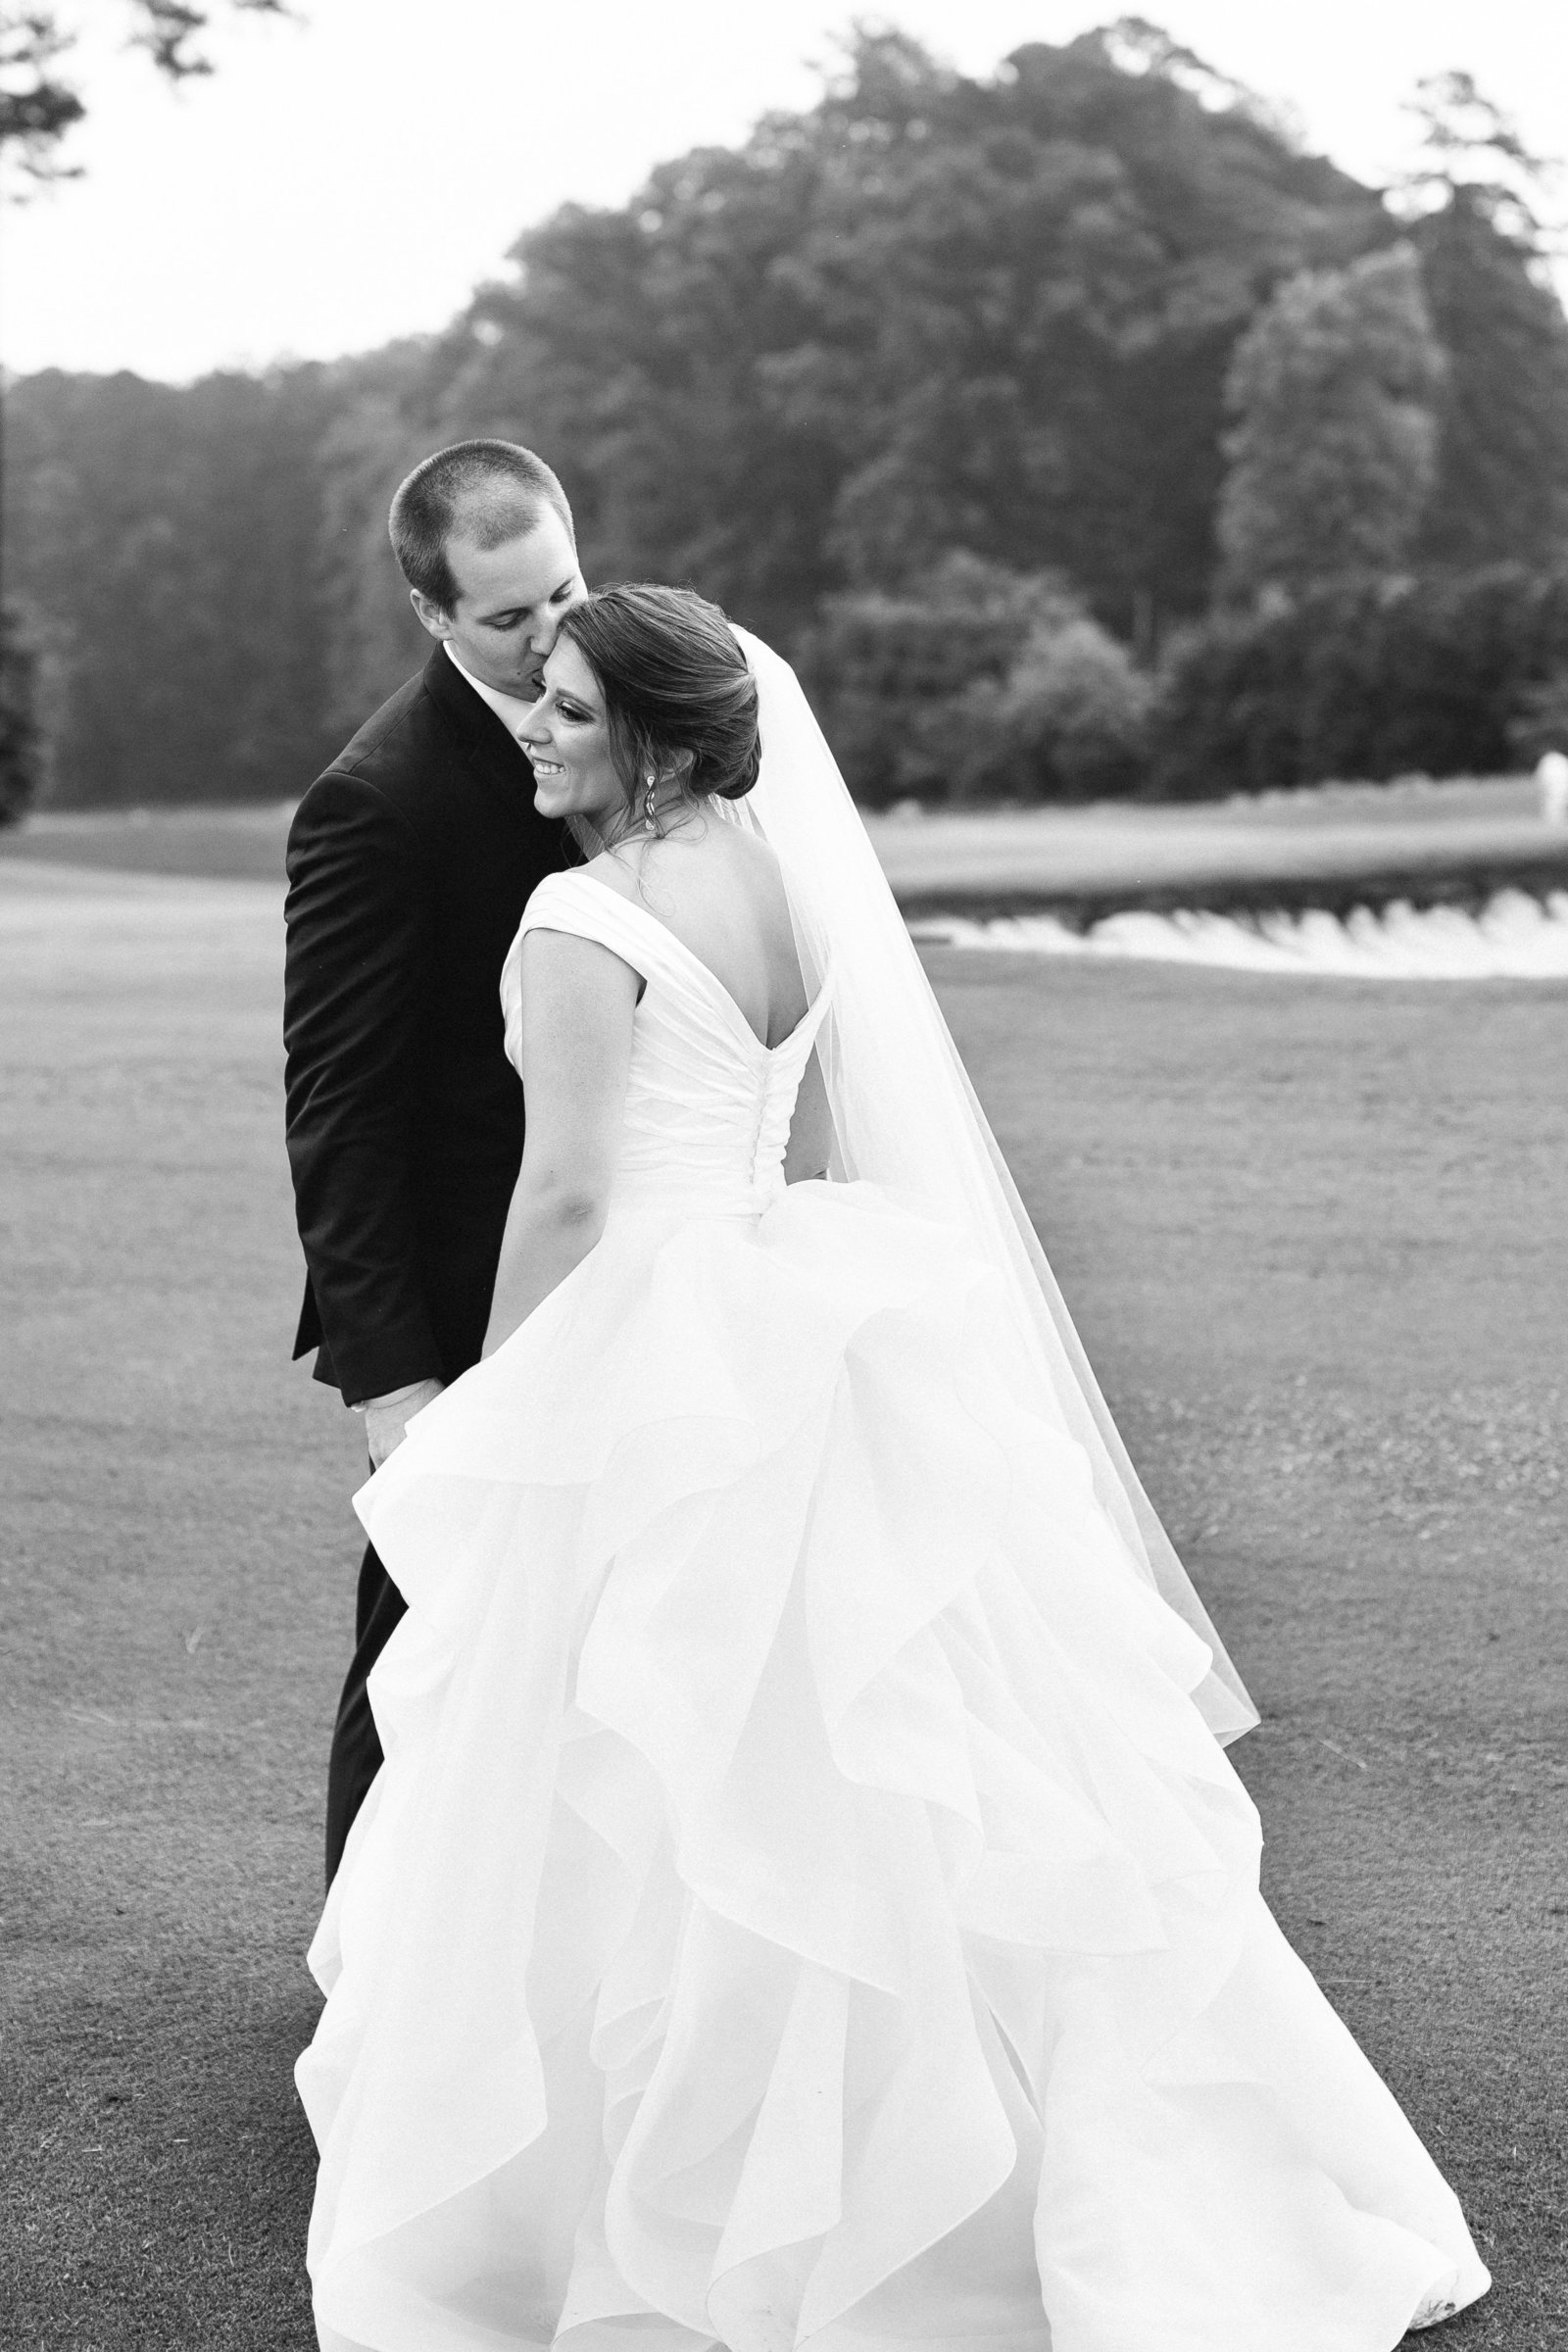 Patrick and Katie Married-Portraits-Samantha Laffoon Photography-133